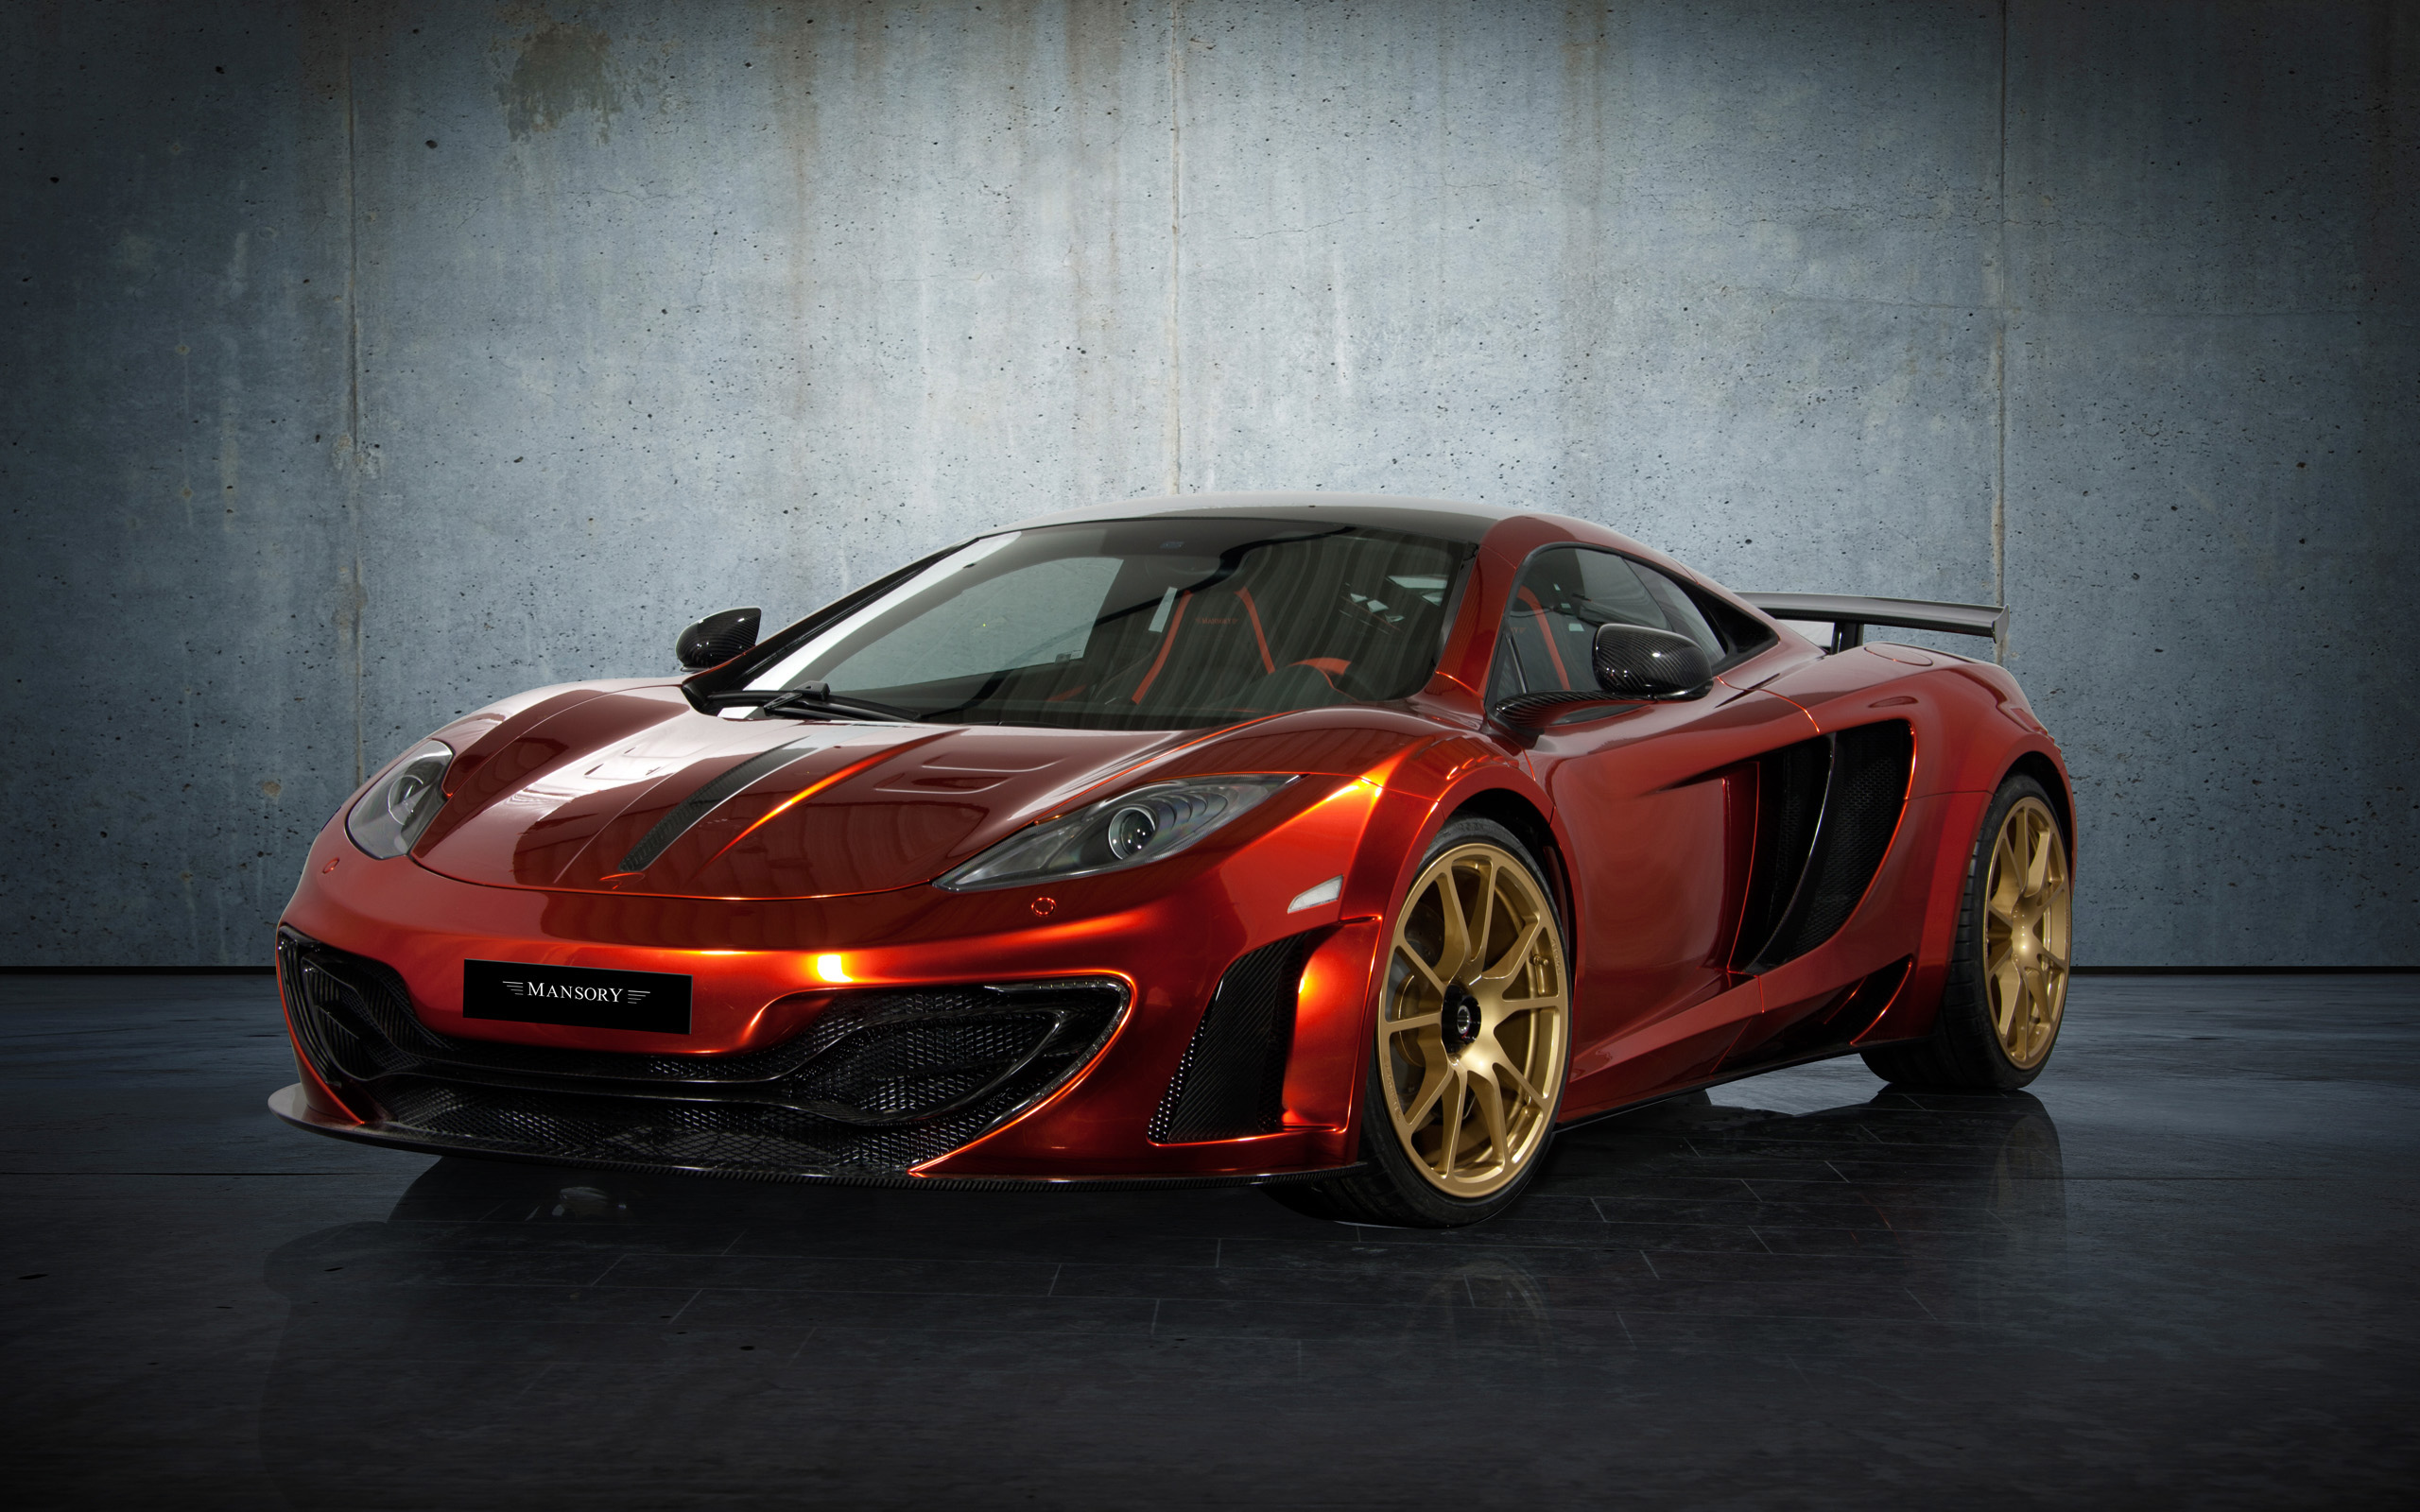 2012 mansory mclaren mp4 12c wallpaper hd car wallpapers. Black Bedroom Furniture Sets. Home Design Ideas